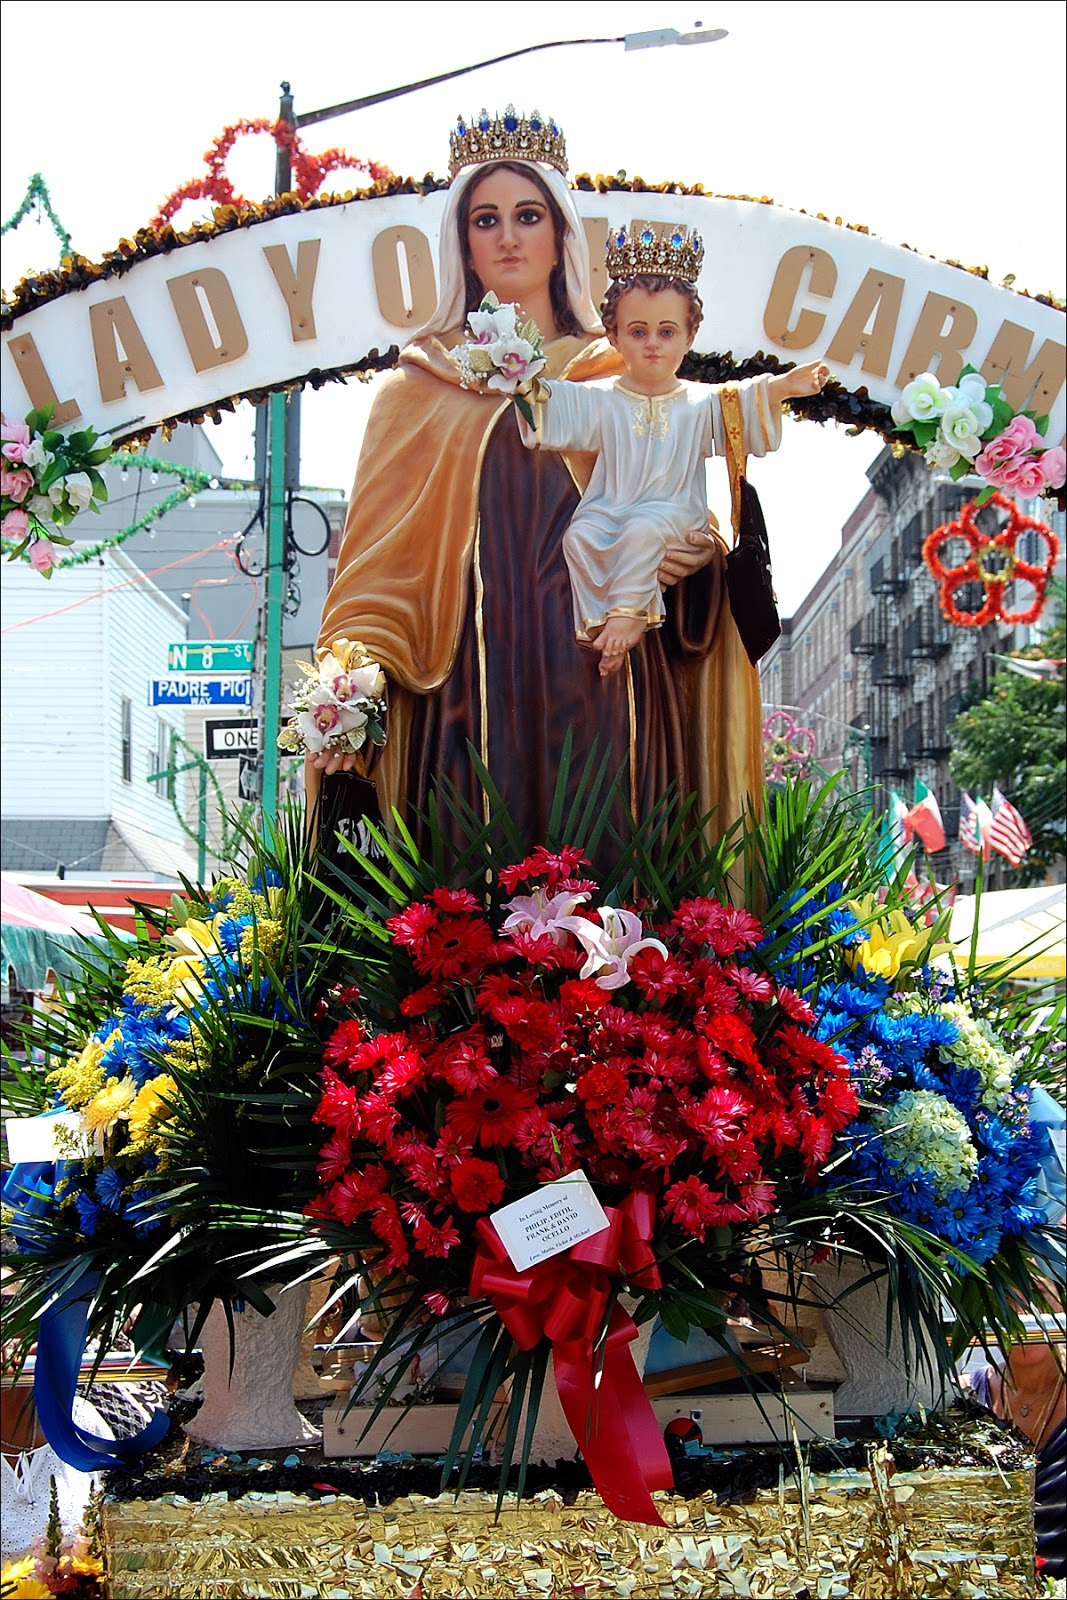 Il Regno: A Look at the 2016 Feast of Our Lady of Mount